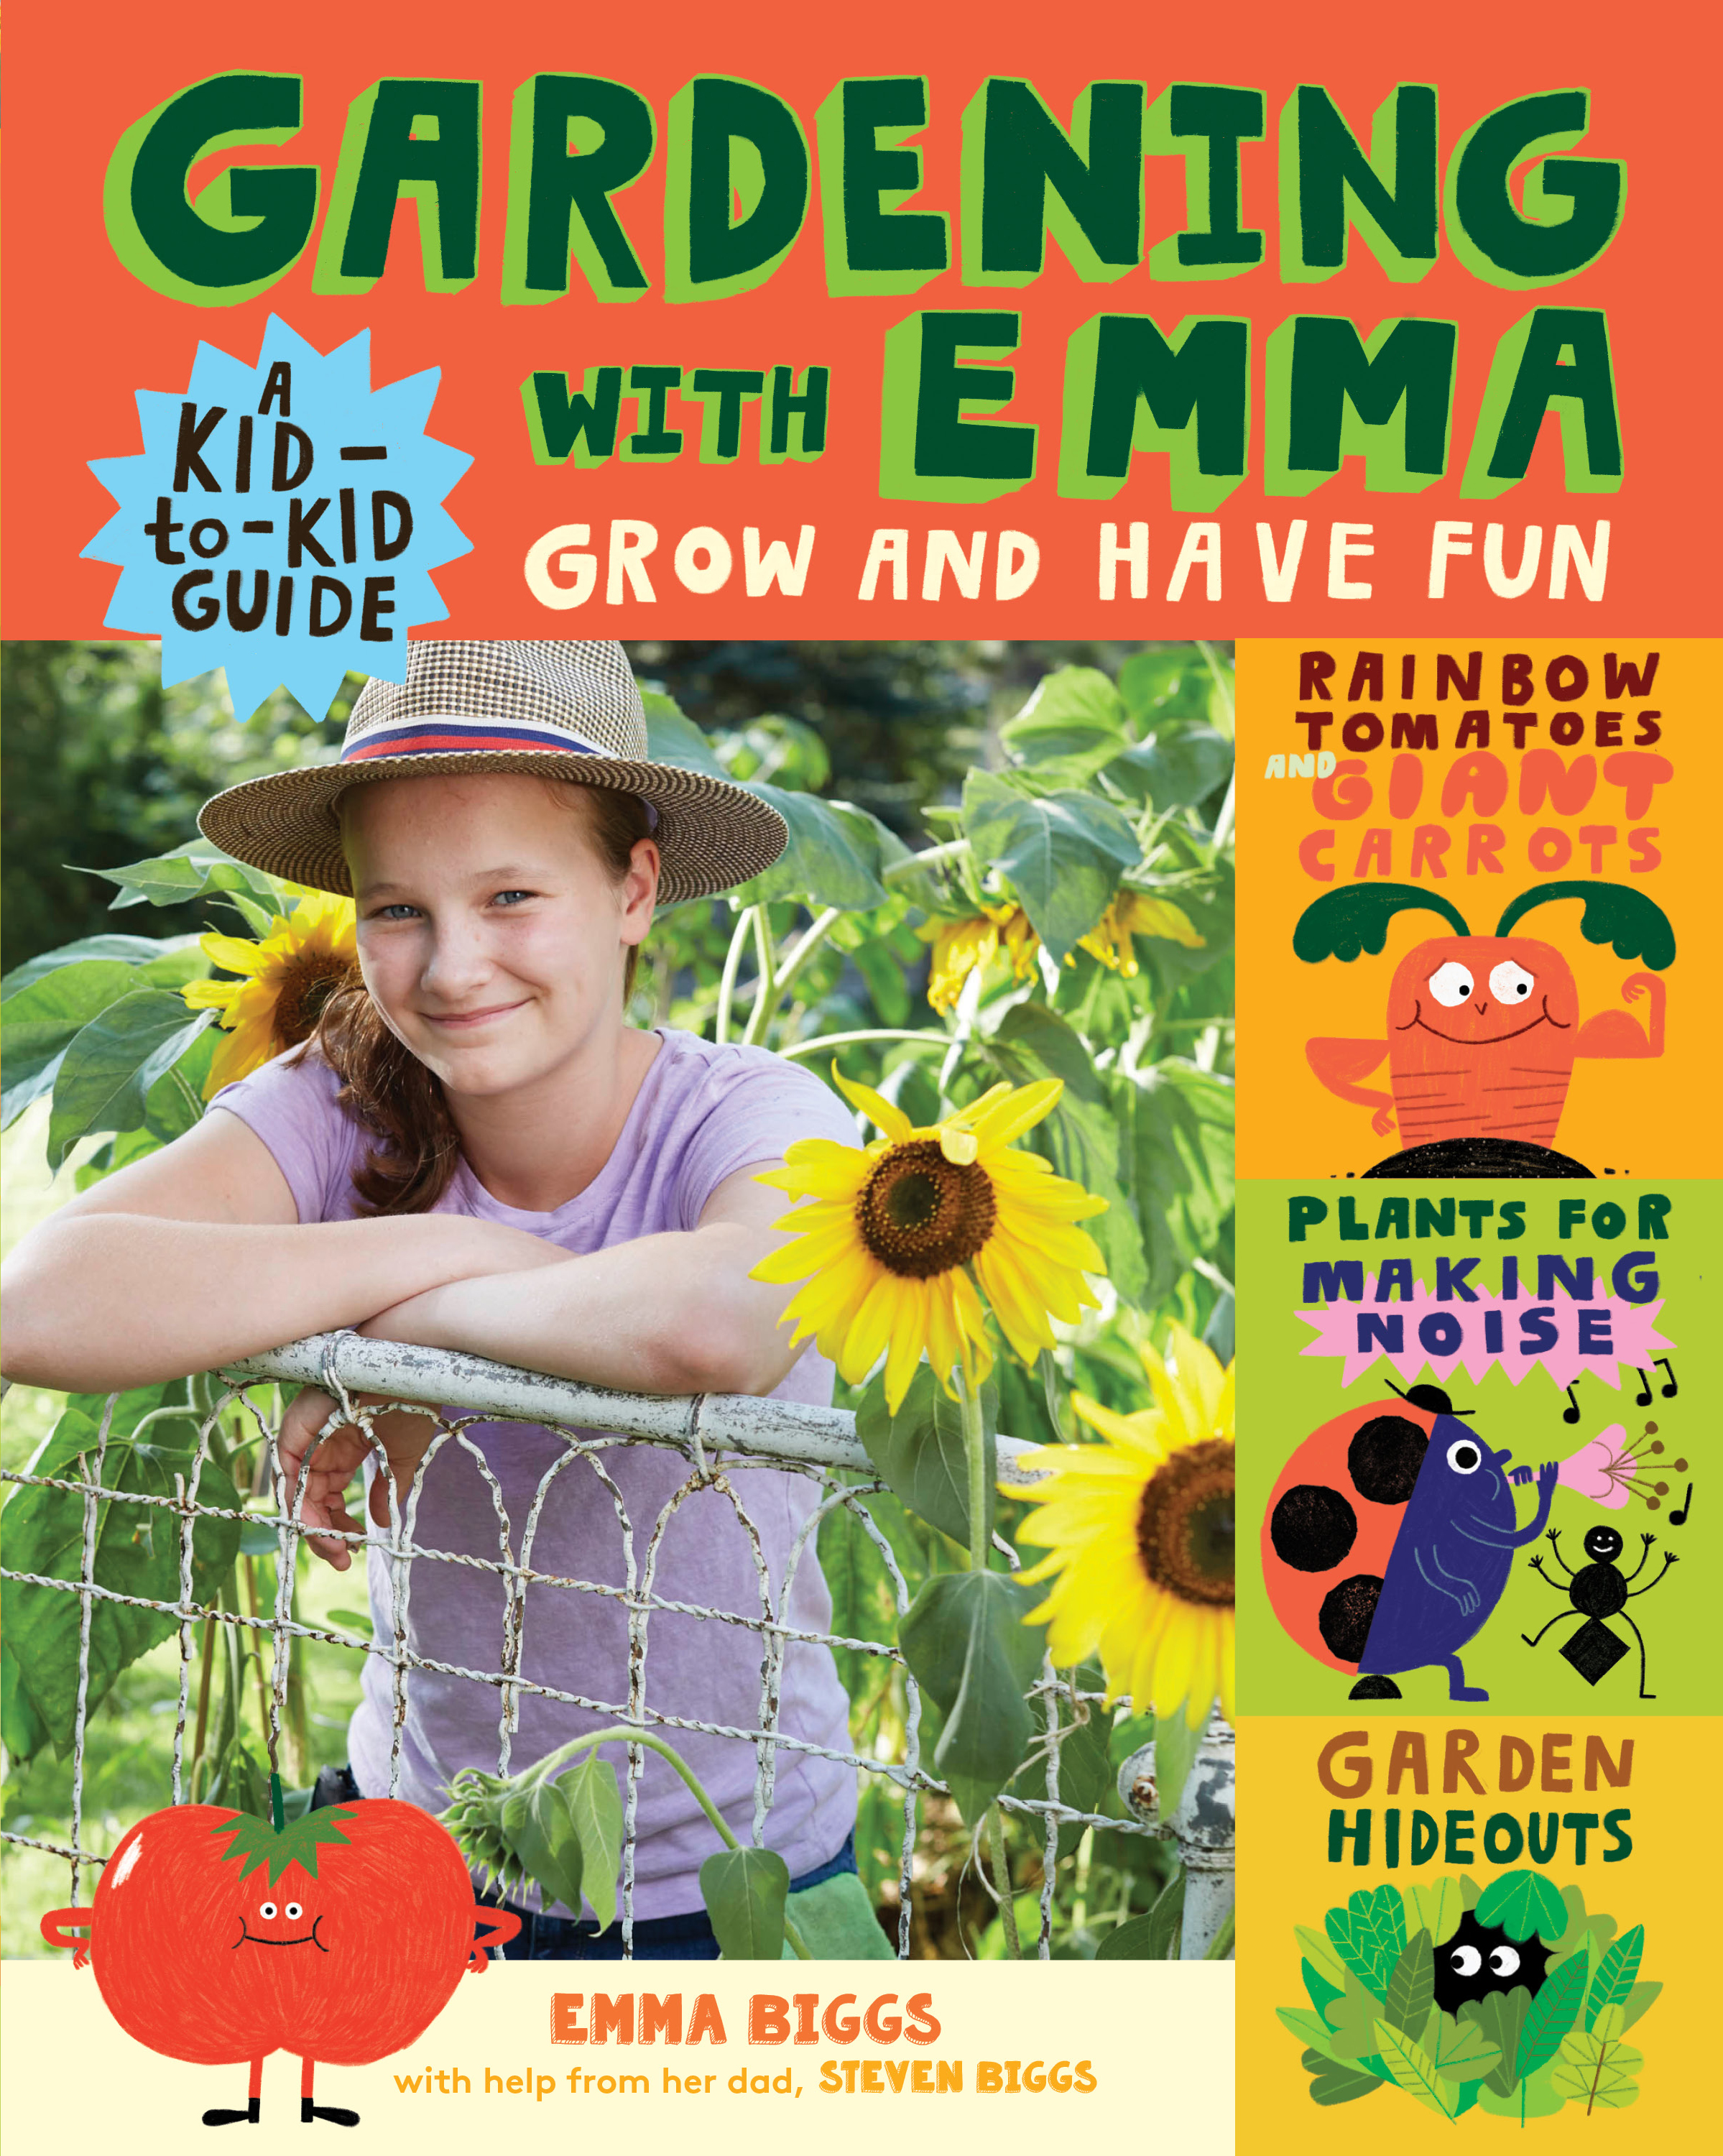 Gardening with Emma Grow and Have Fun: A Kid-to-Kid Guide - Emma Biggs